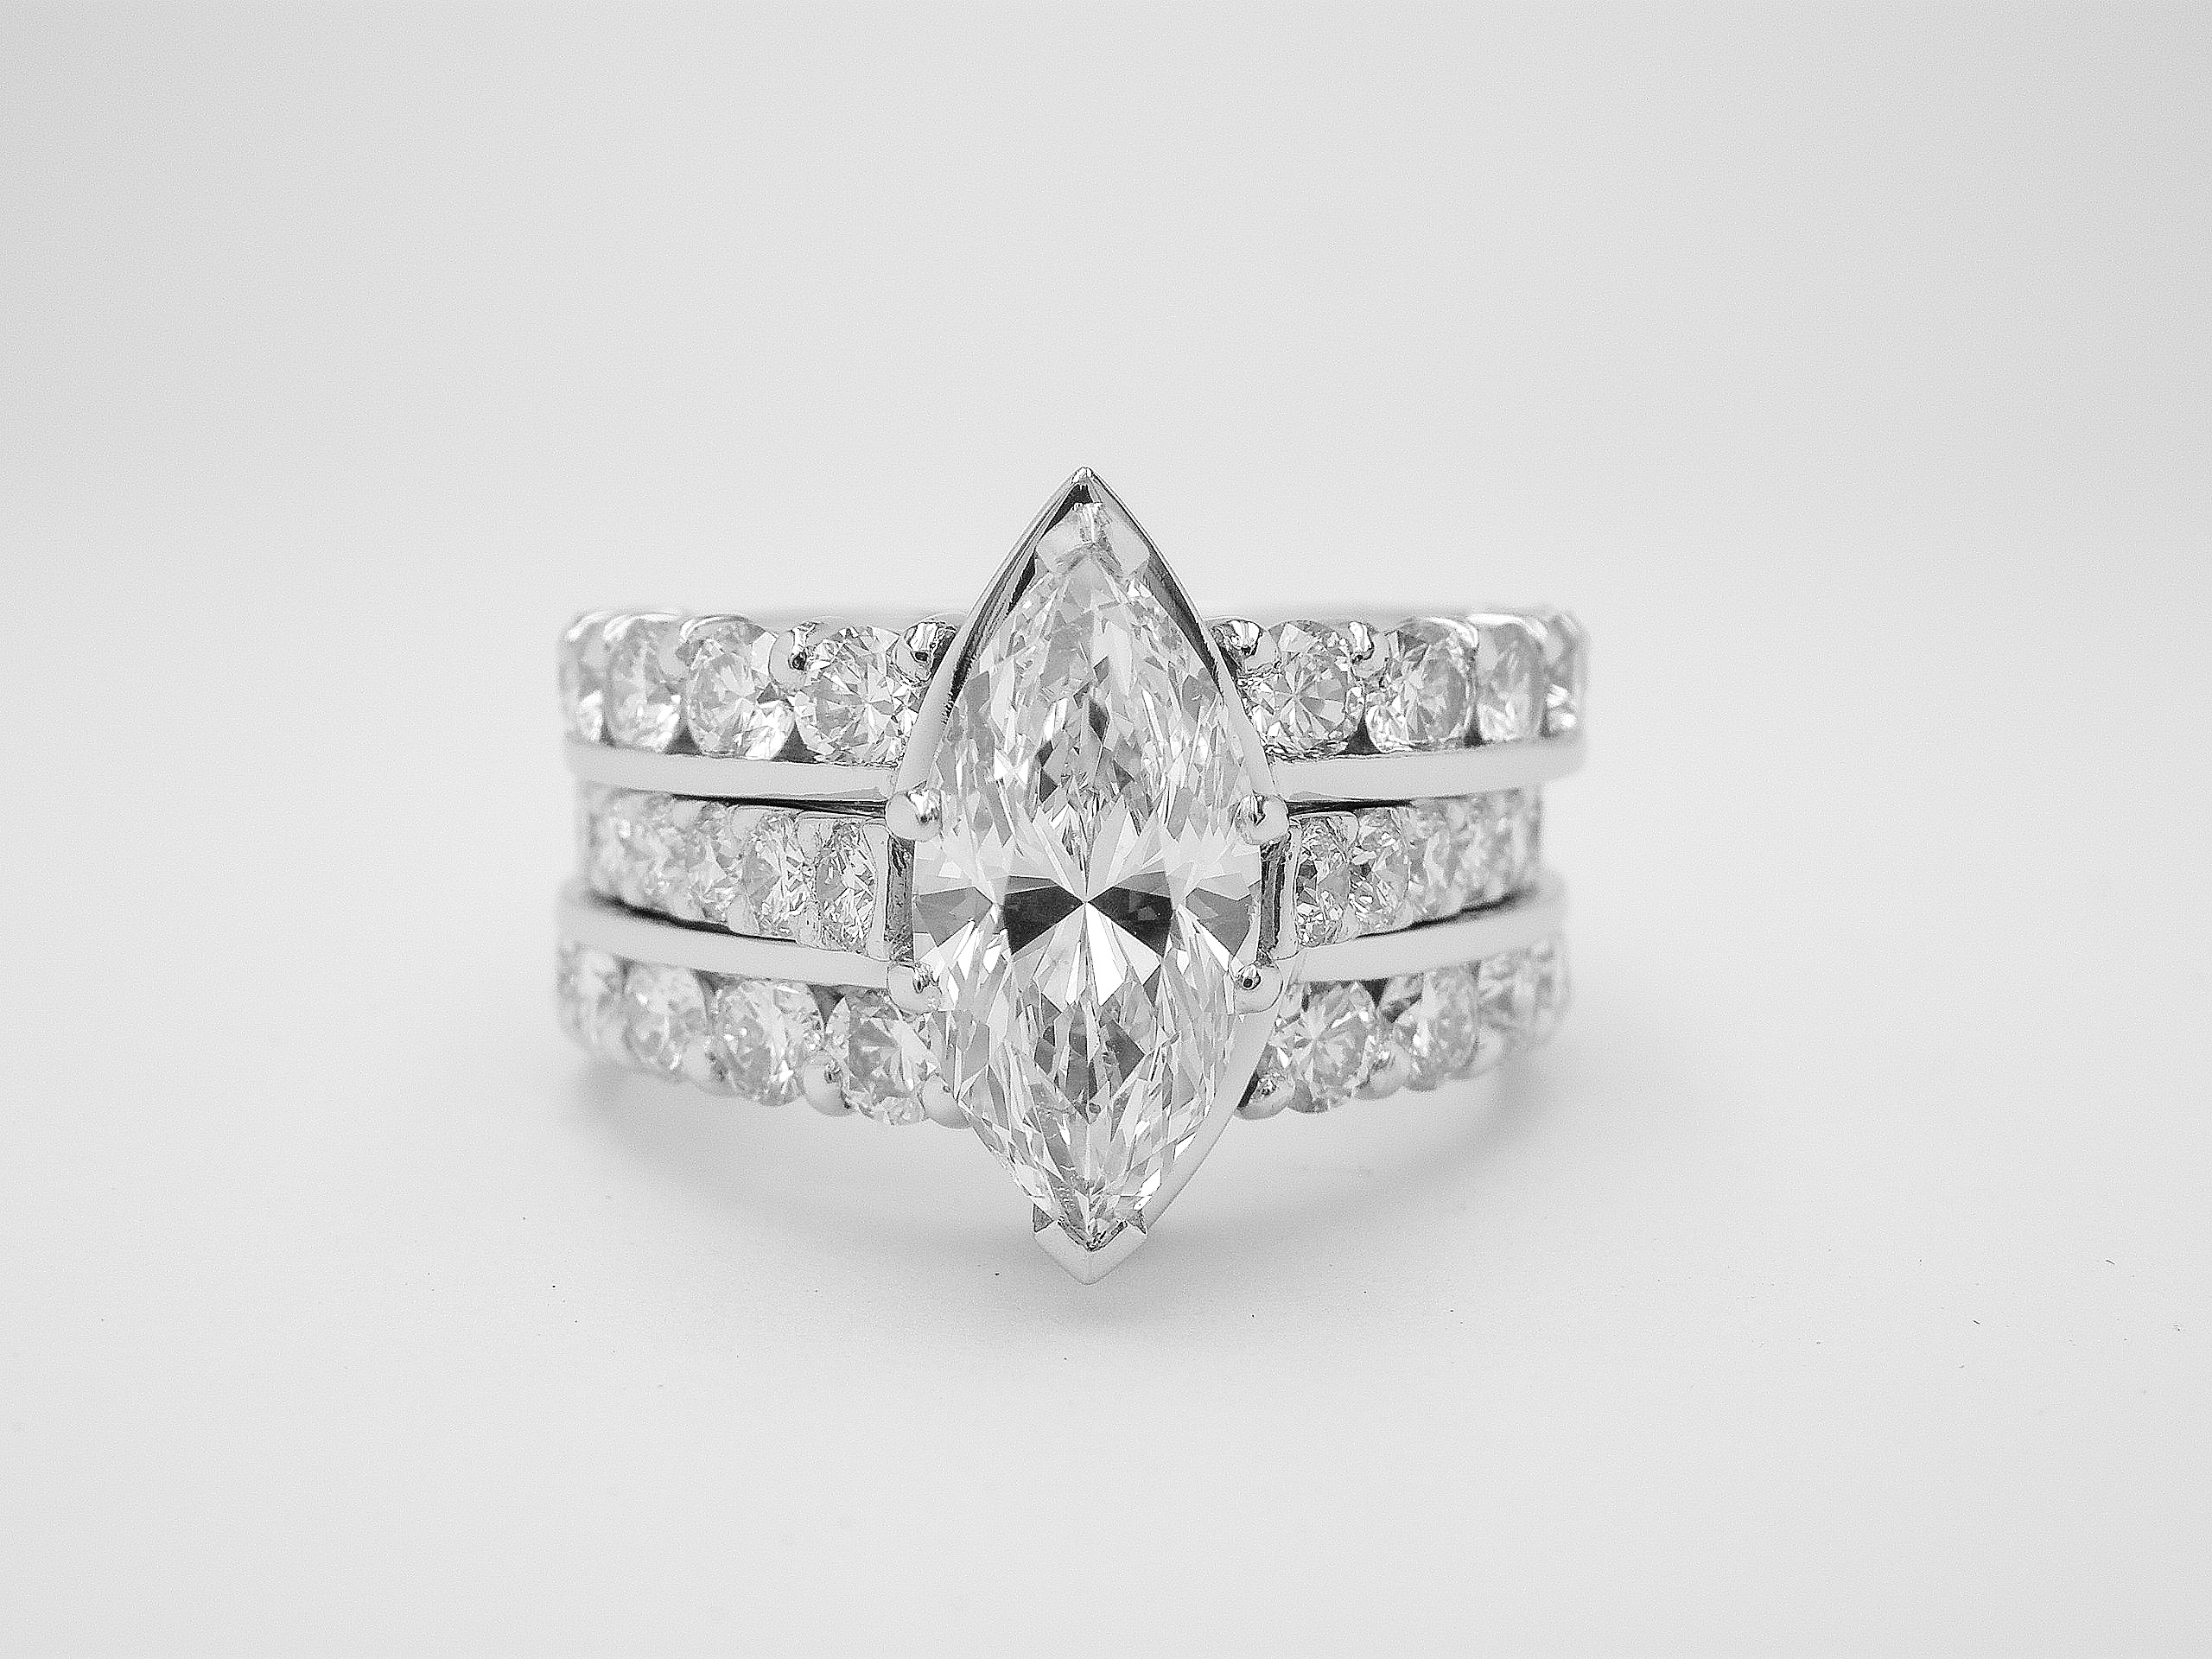 estate vintage img measures approximately diamond each flanked two measure fine prong yellow very that by marquise ring pear platinum diamonds cut treated rings in irradiated set size